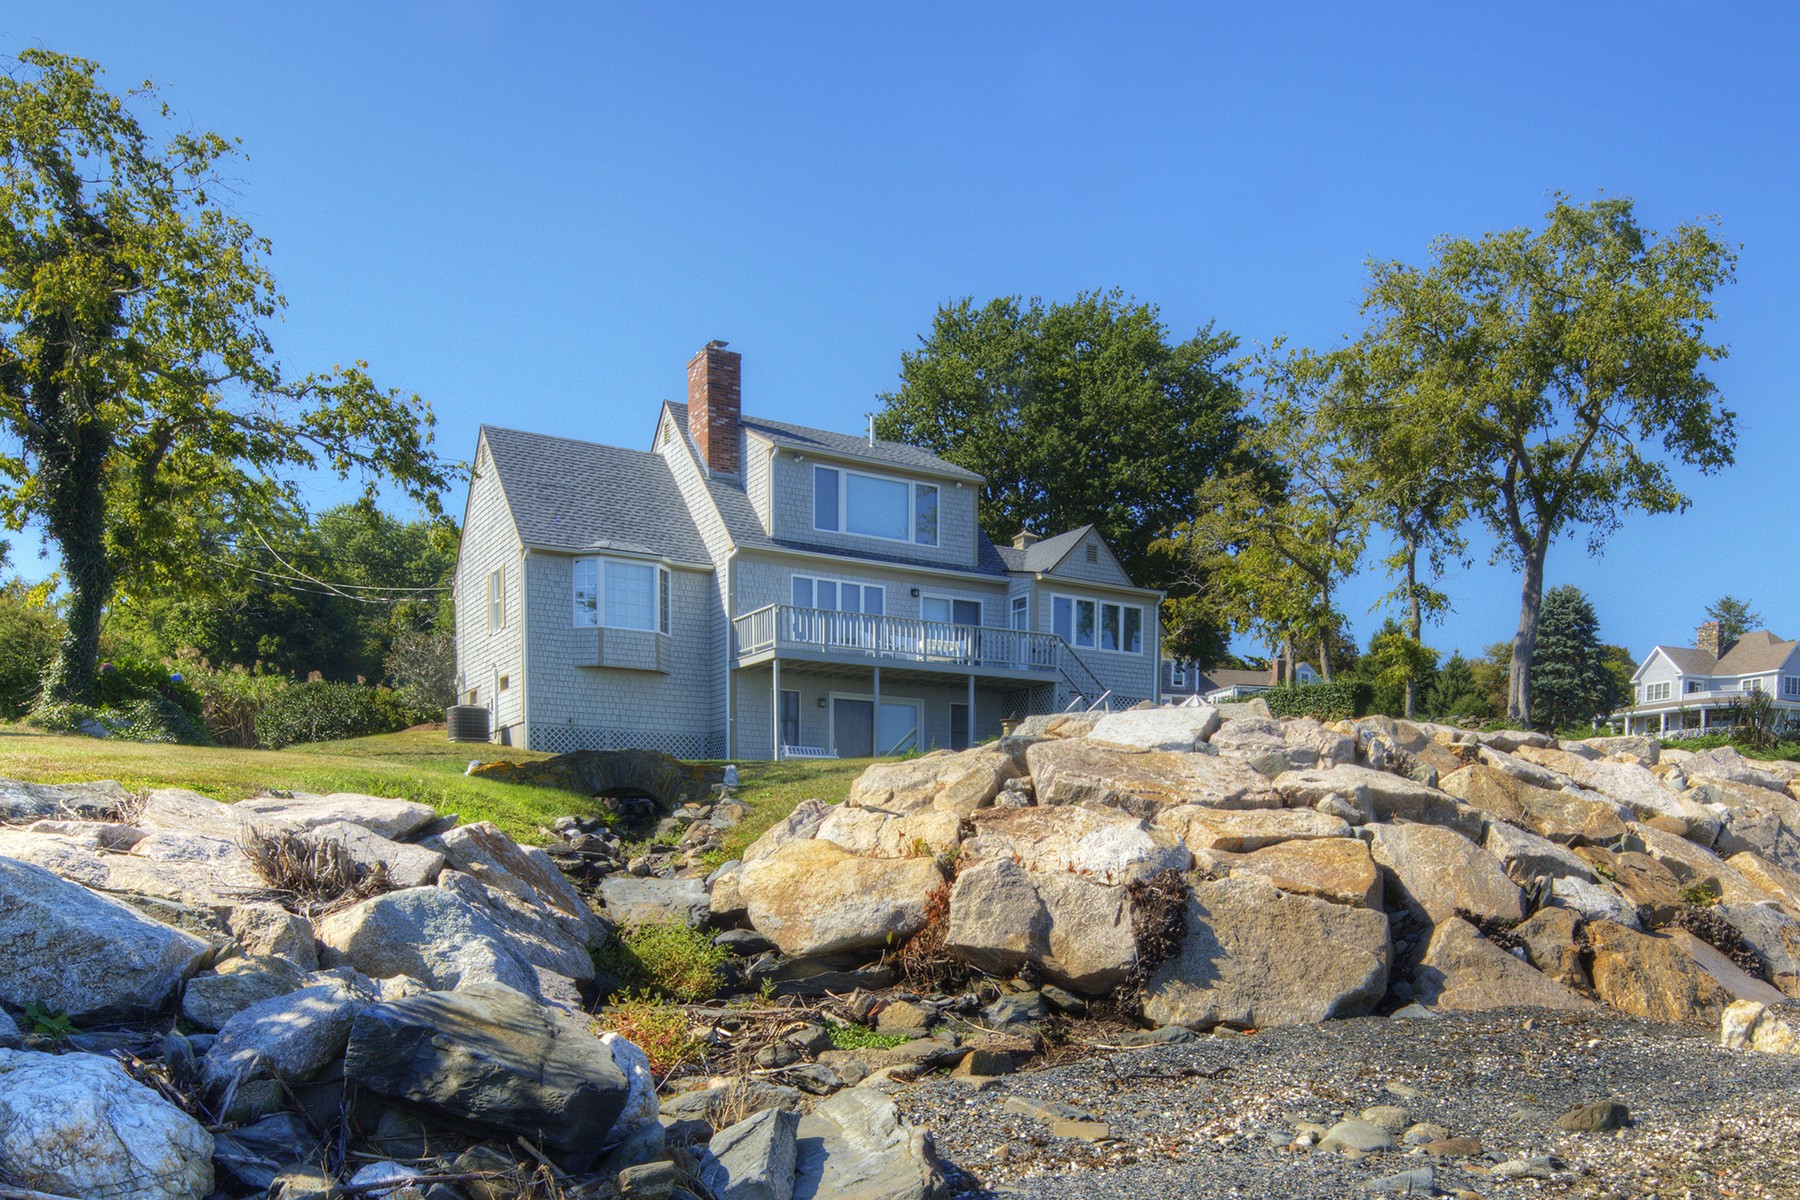 """Property For Sale at """"Merrybrook"""" - Waterfront Cape"""